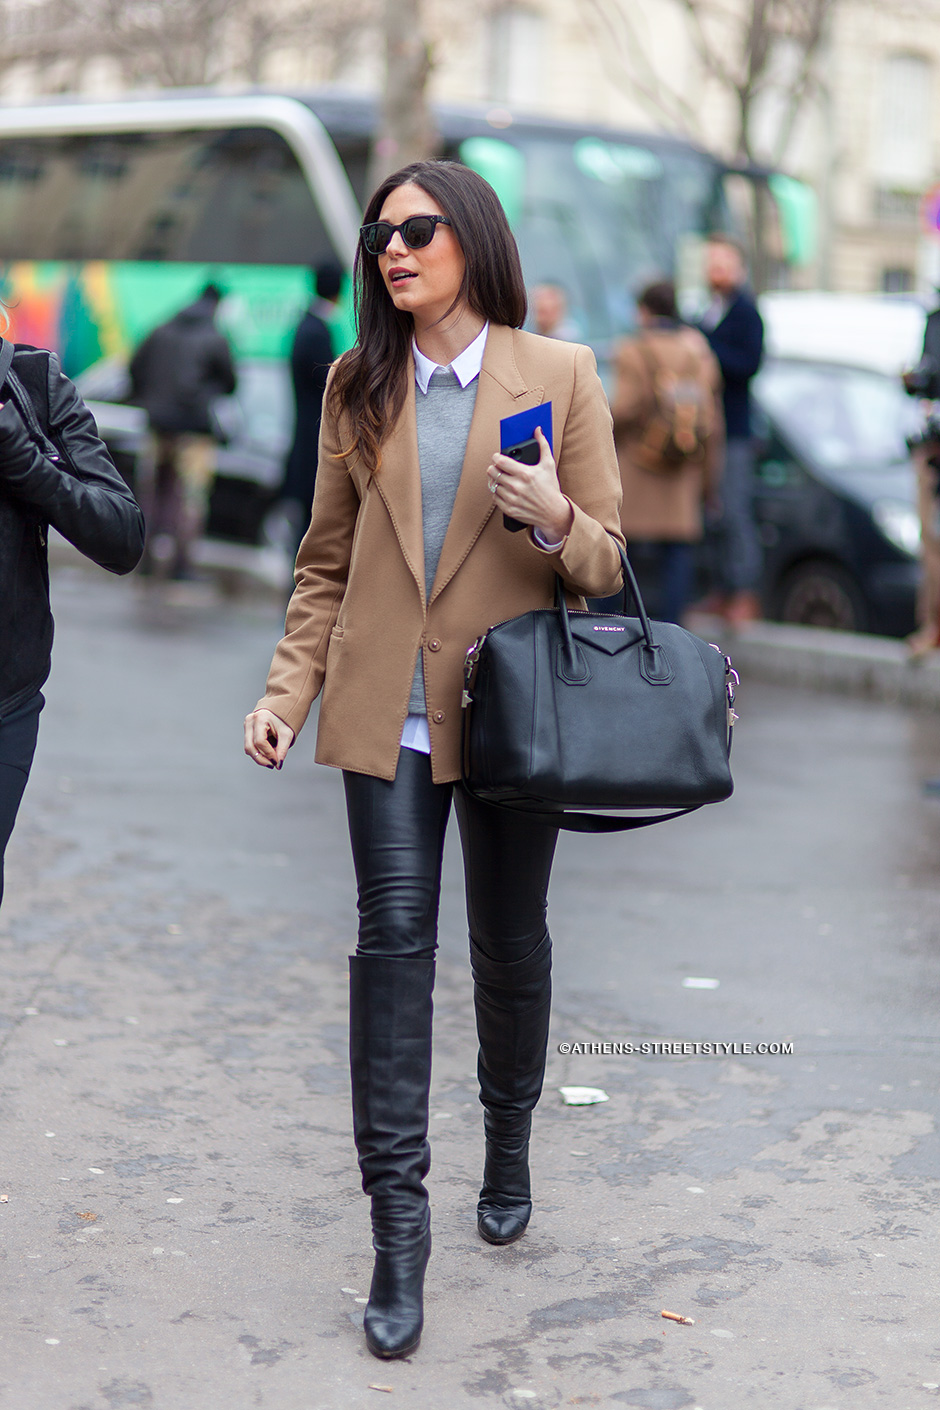 paris-street-style-winter-6334-athens-streetstyle-woman-camel-blazer-leather-pants-paris-fashion-week-fall-winter-2014-2015-street-style-1.jpg